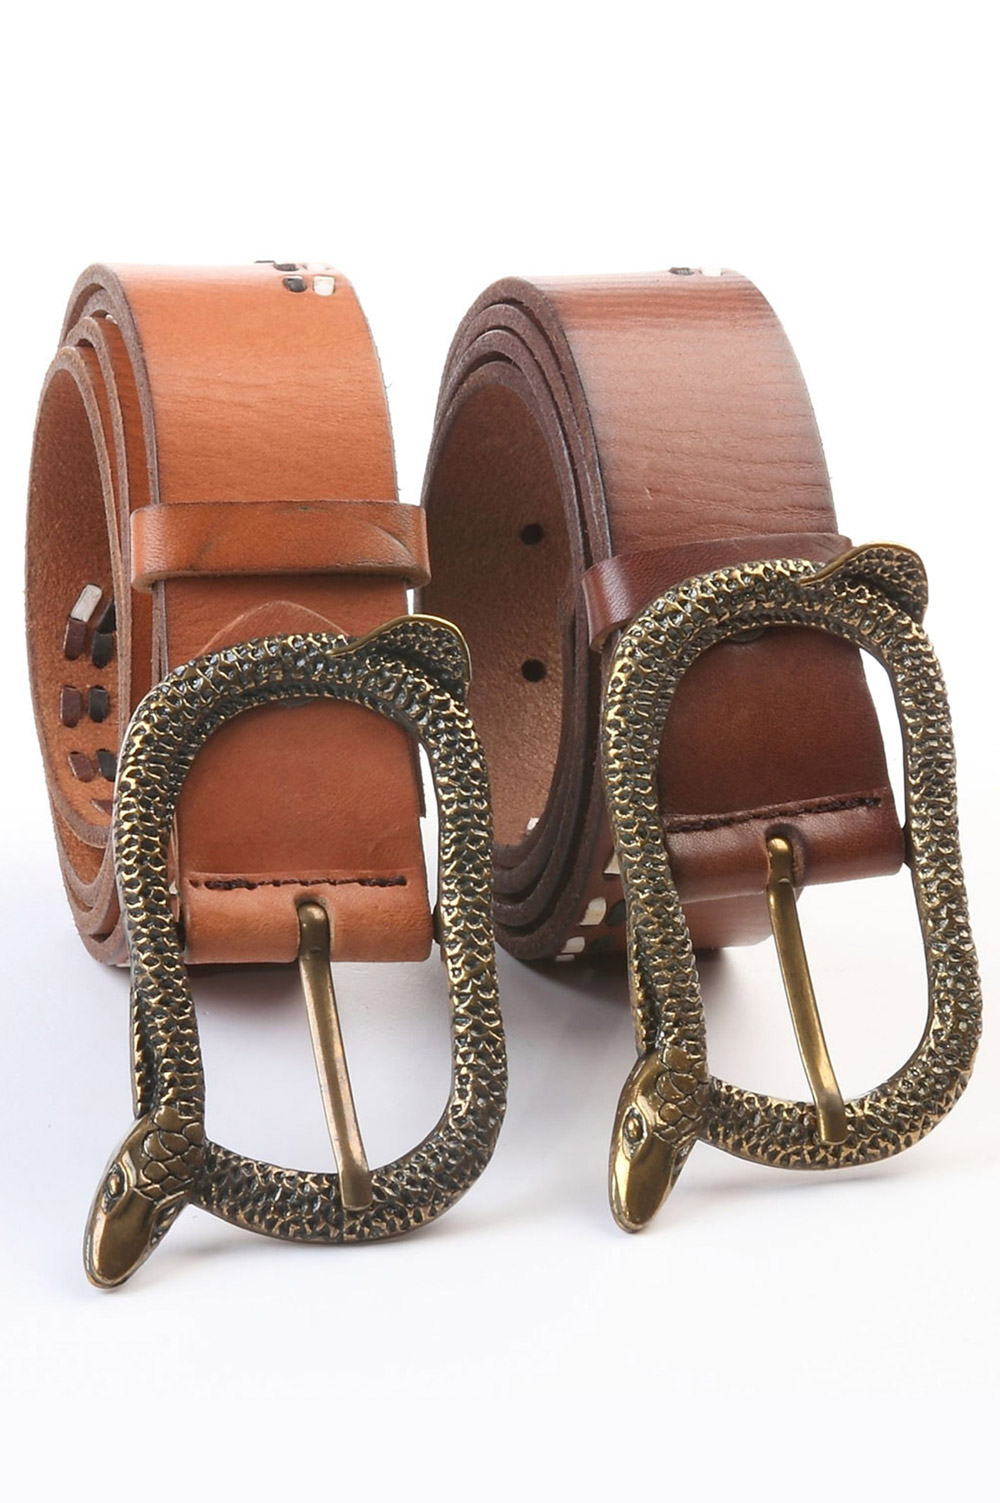 Art Sports Belt from natural brown skin | Black and white wavy decorative stitching and a snake buckle - 518223